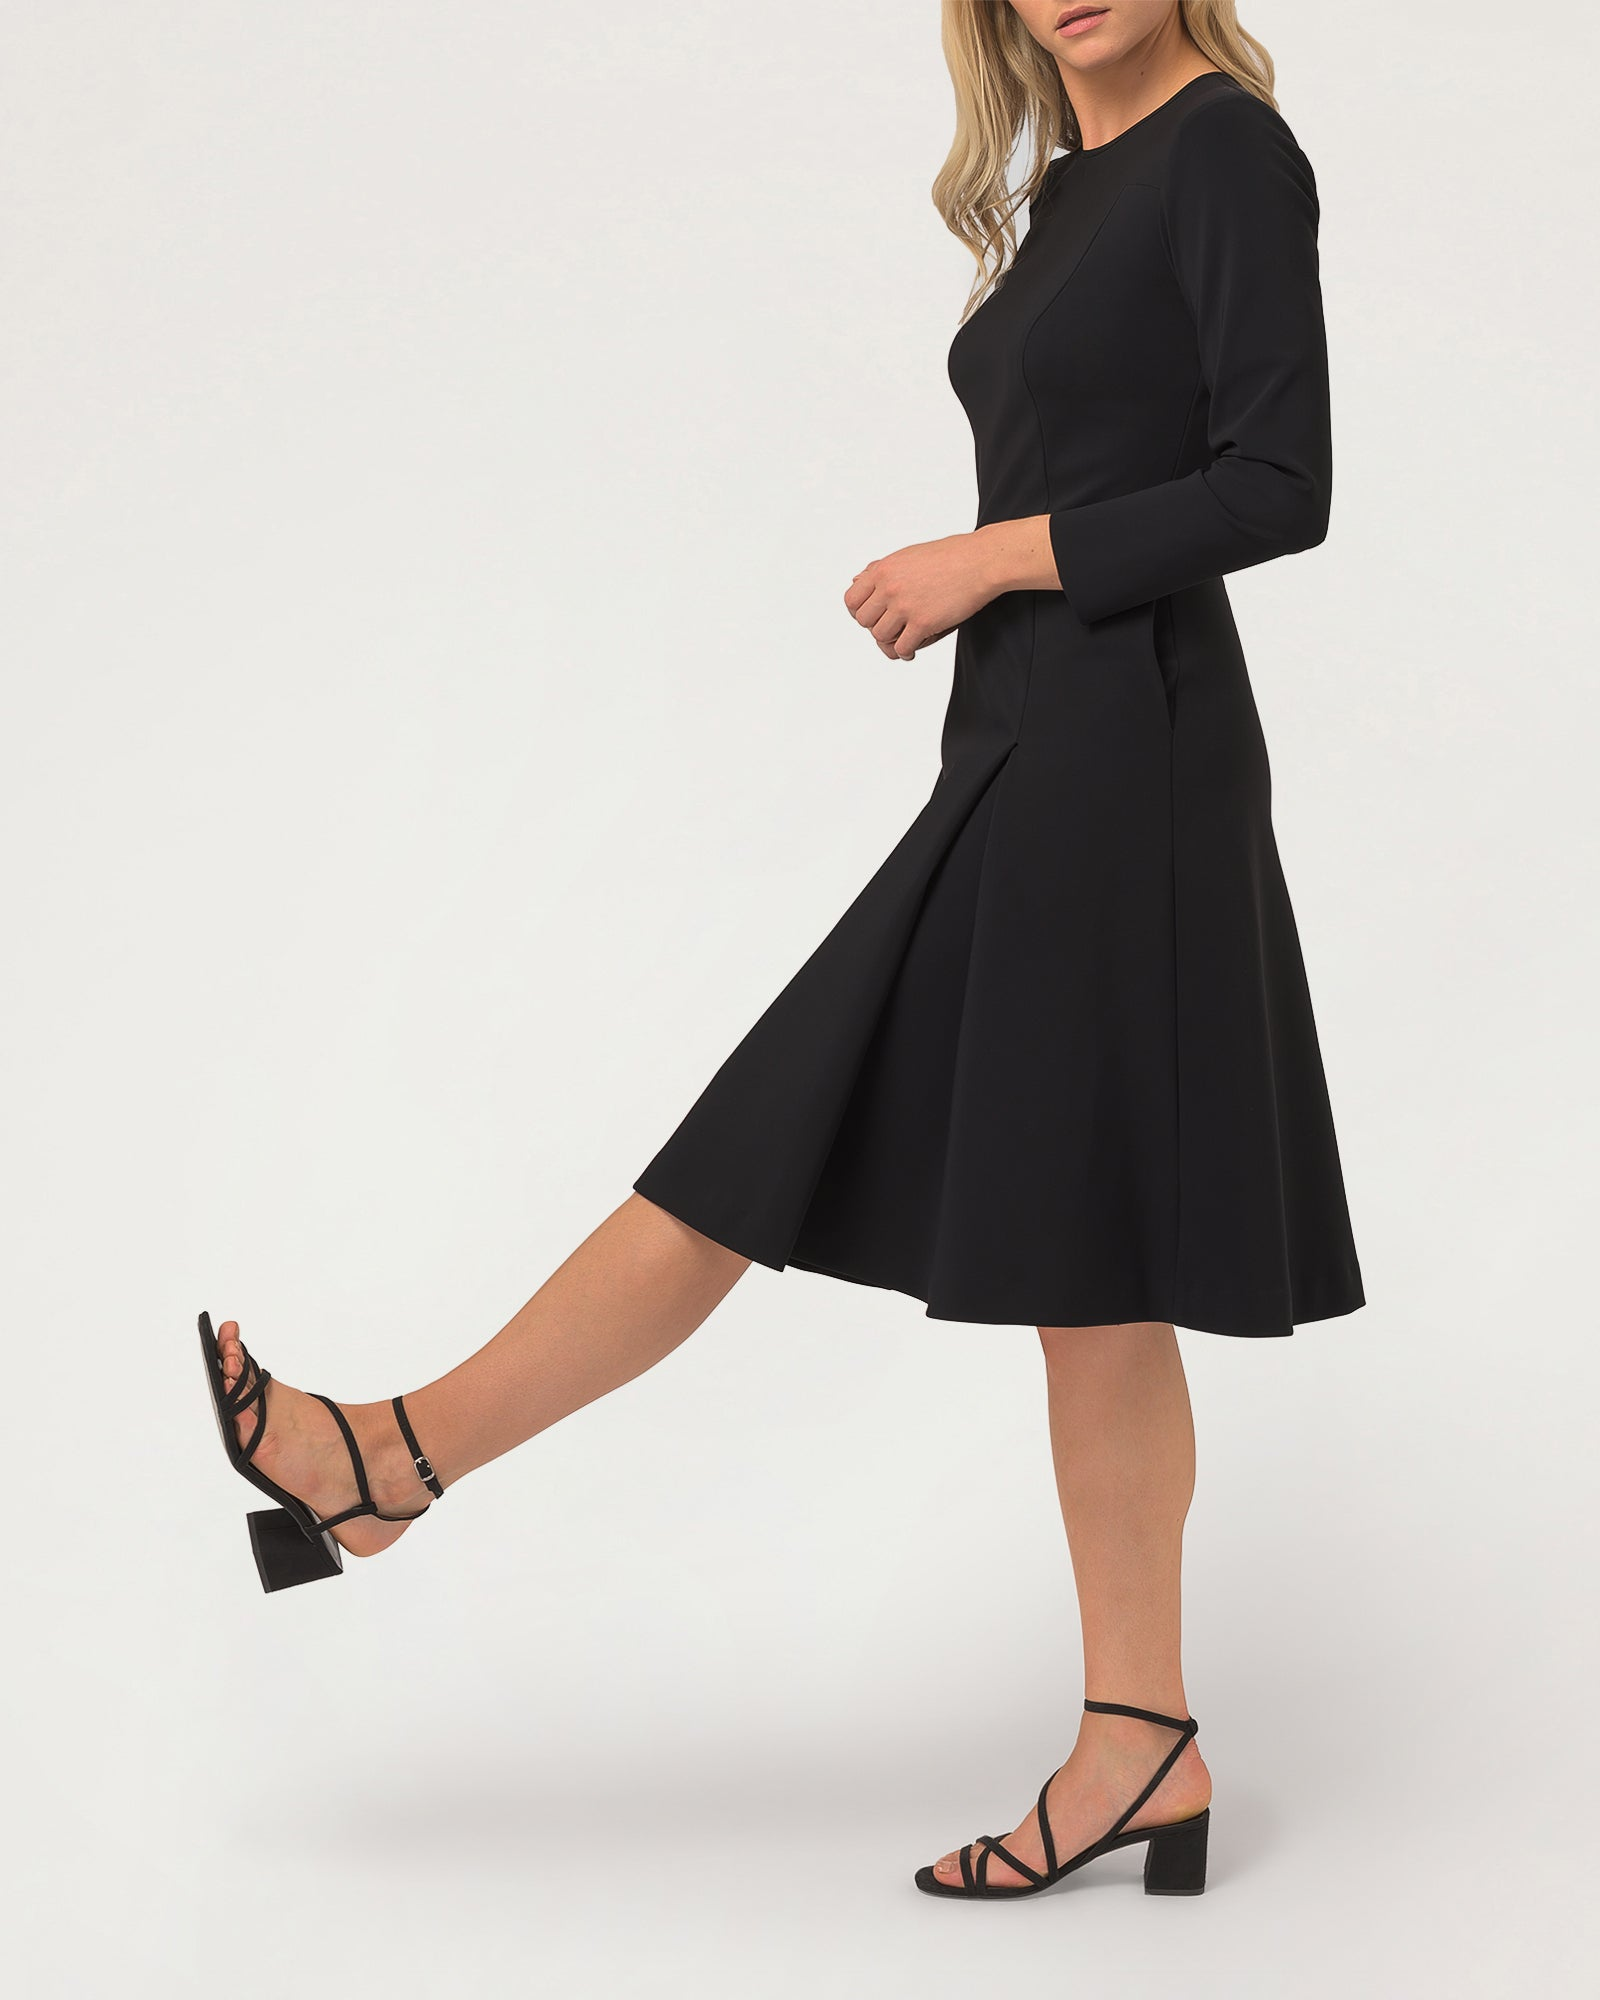 Step To It Dress Black 2.0